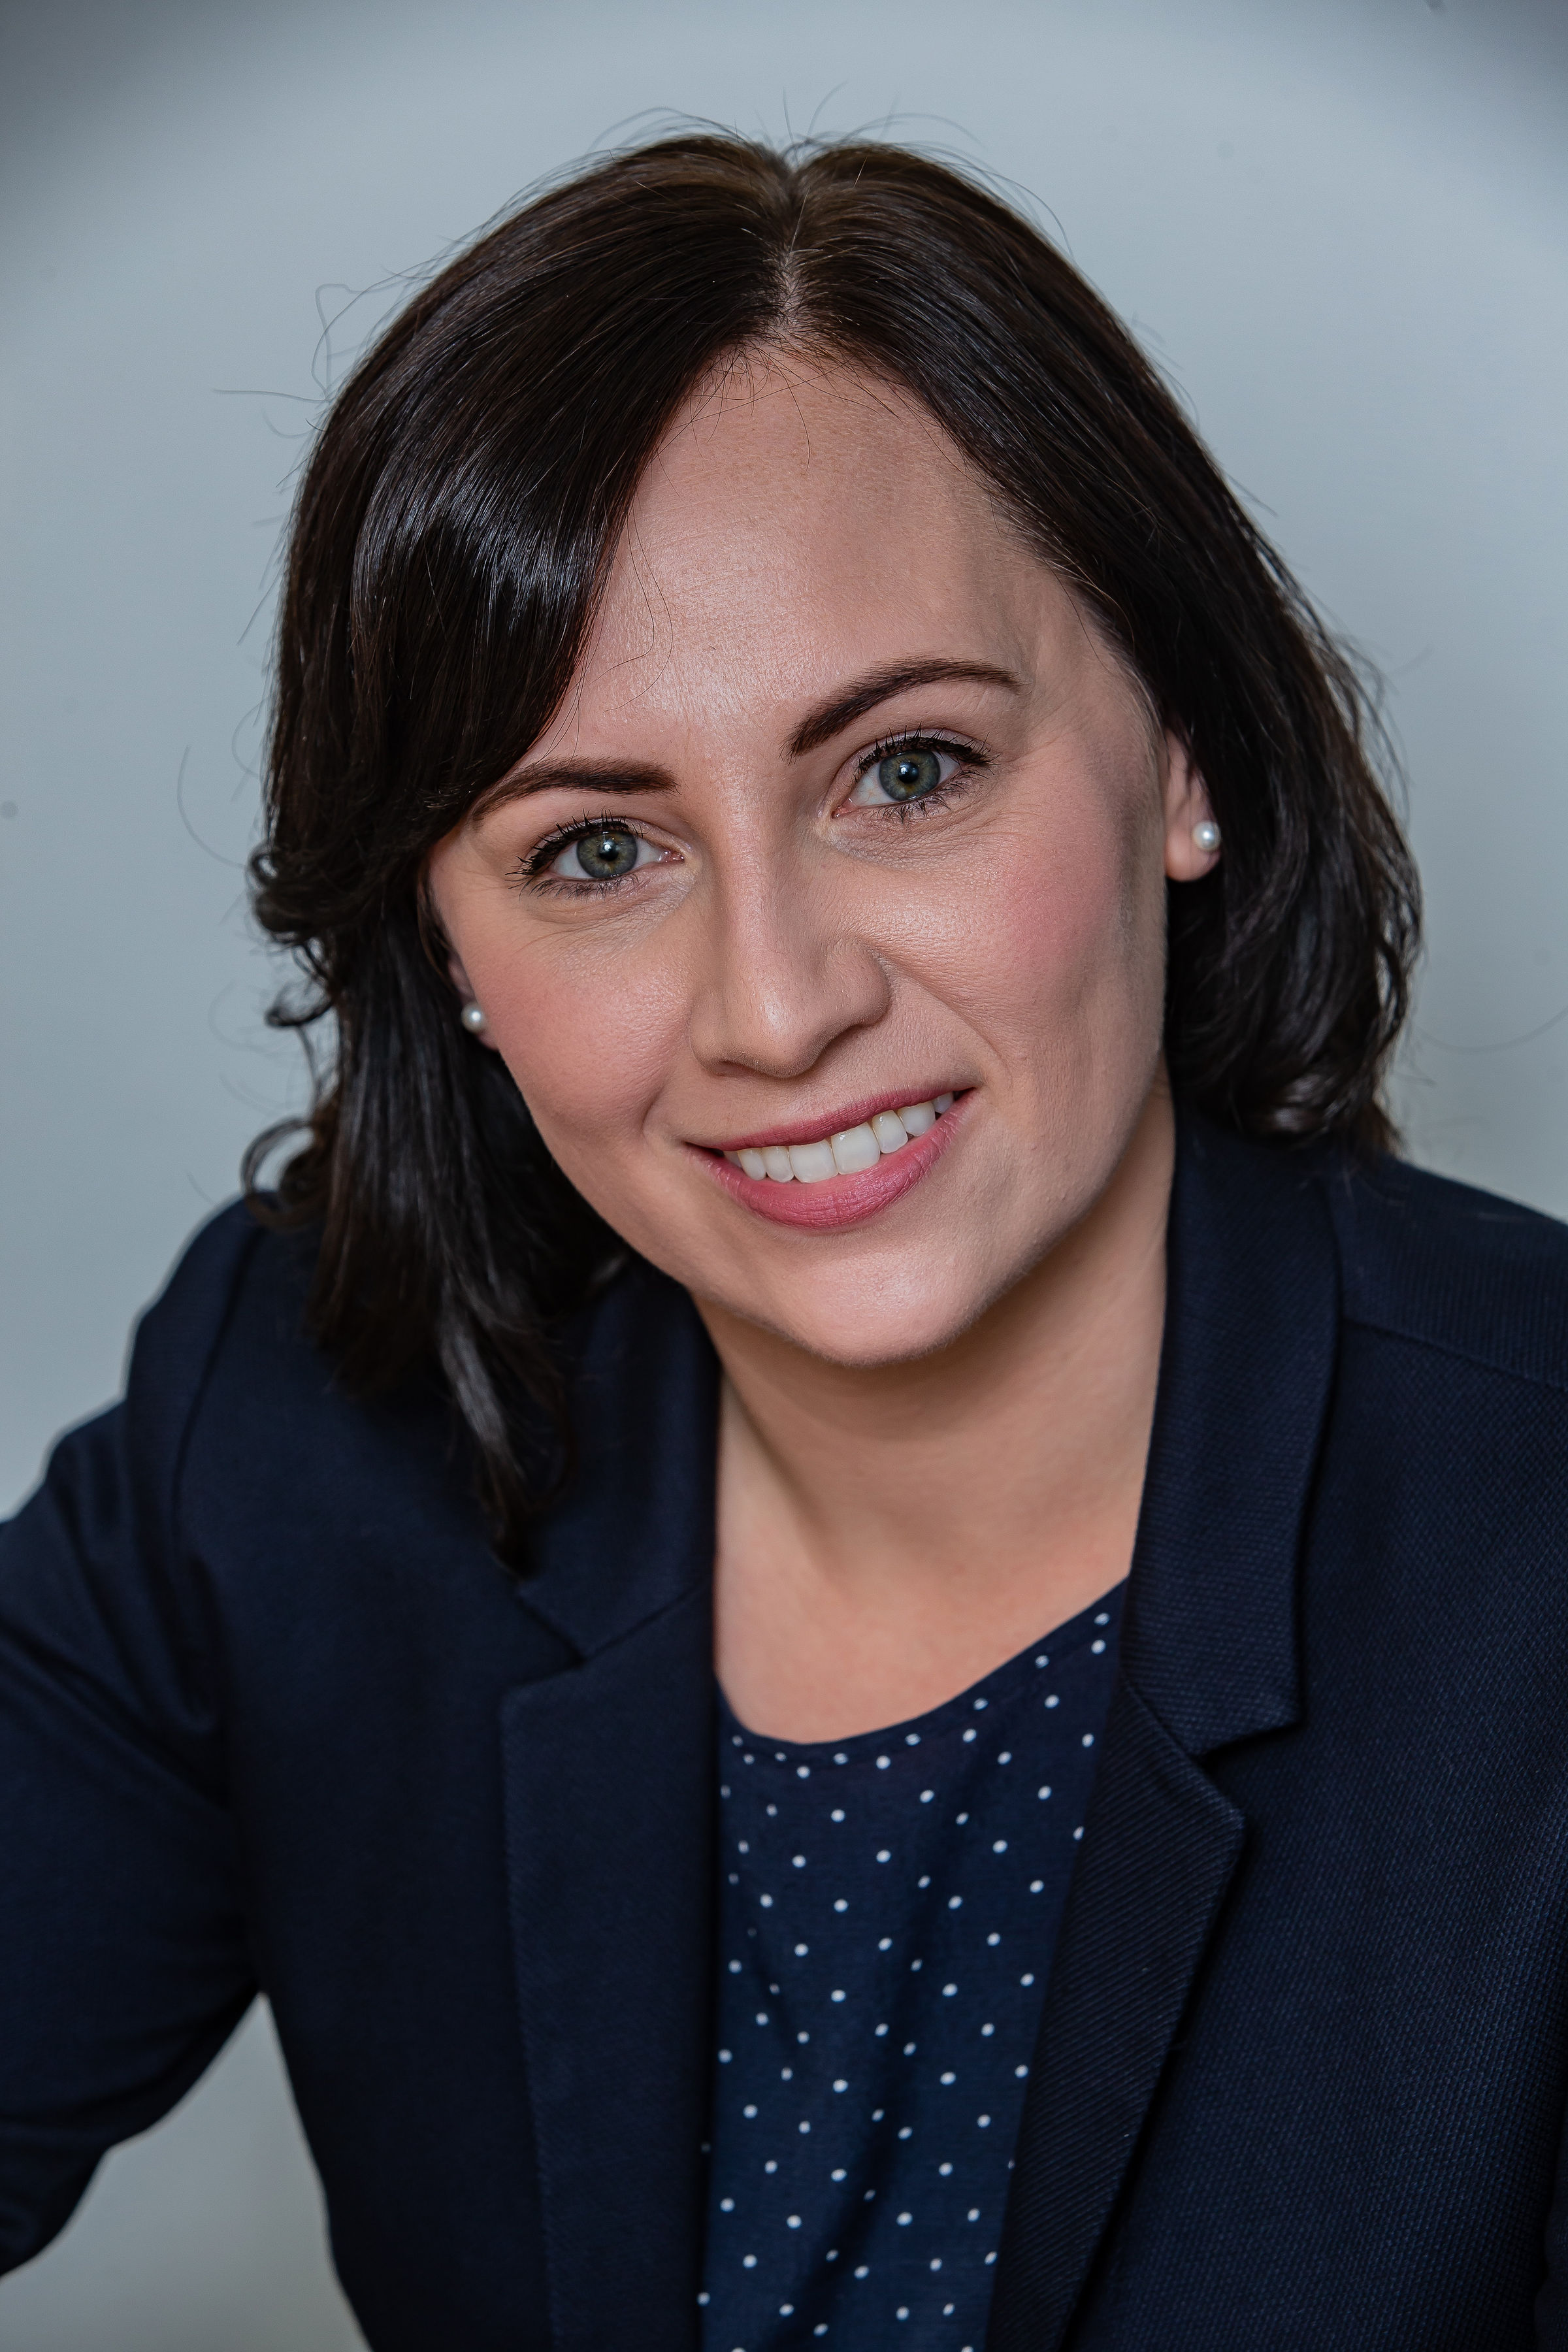 Solicitor joins growing Swindon family law firm